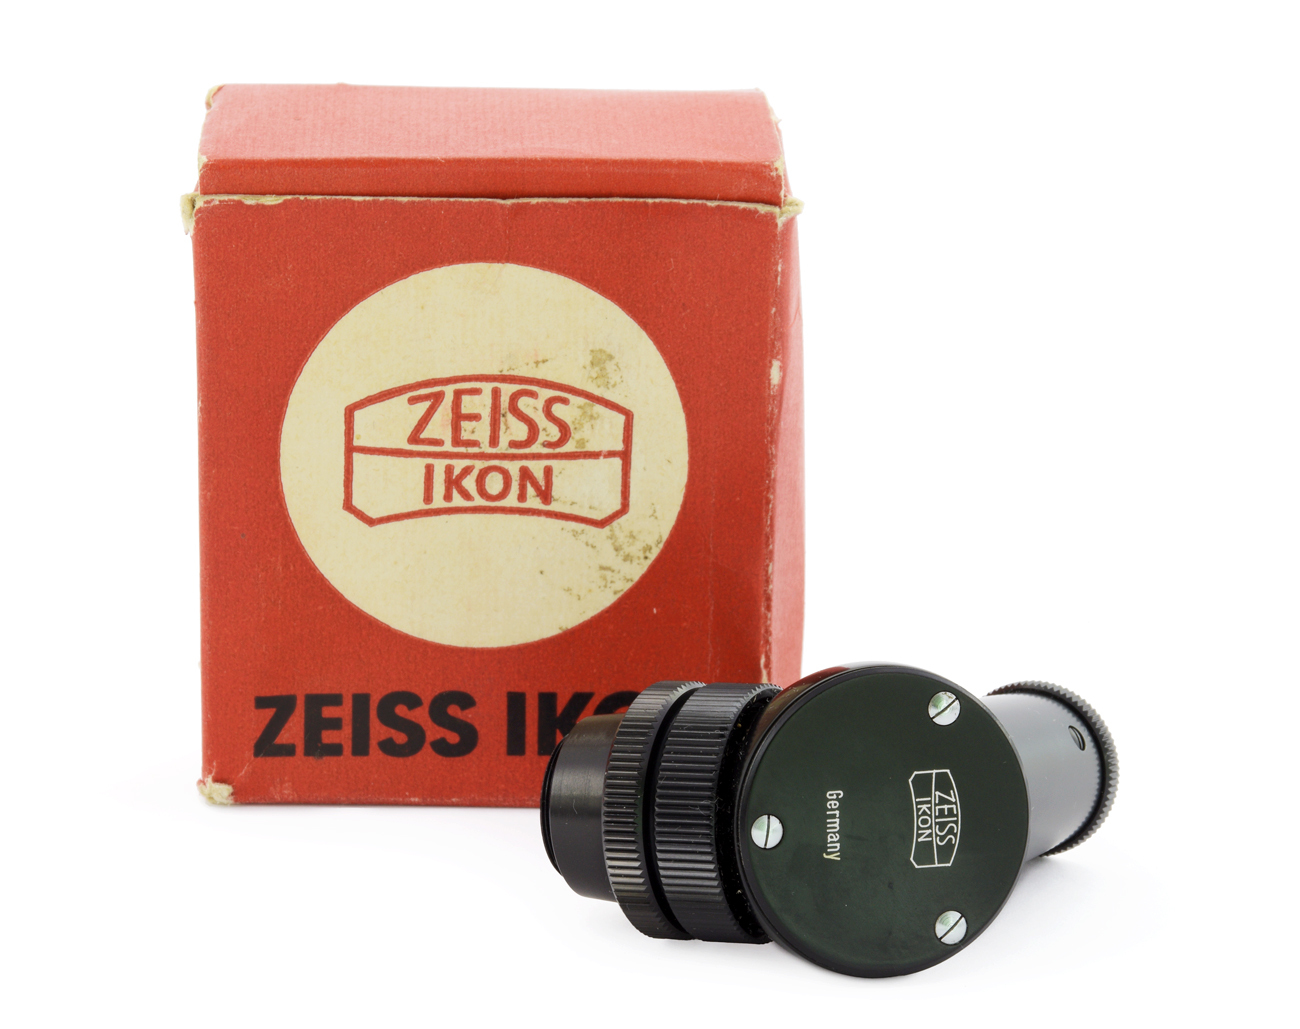 Zeiss Ikon Angle Finder / Angle Telescope 20.1634